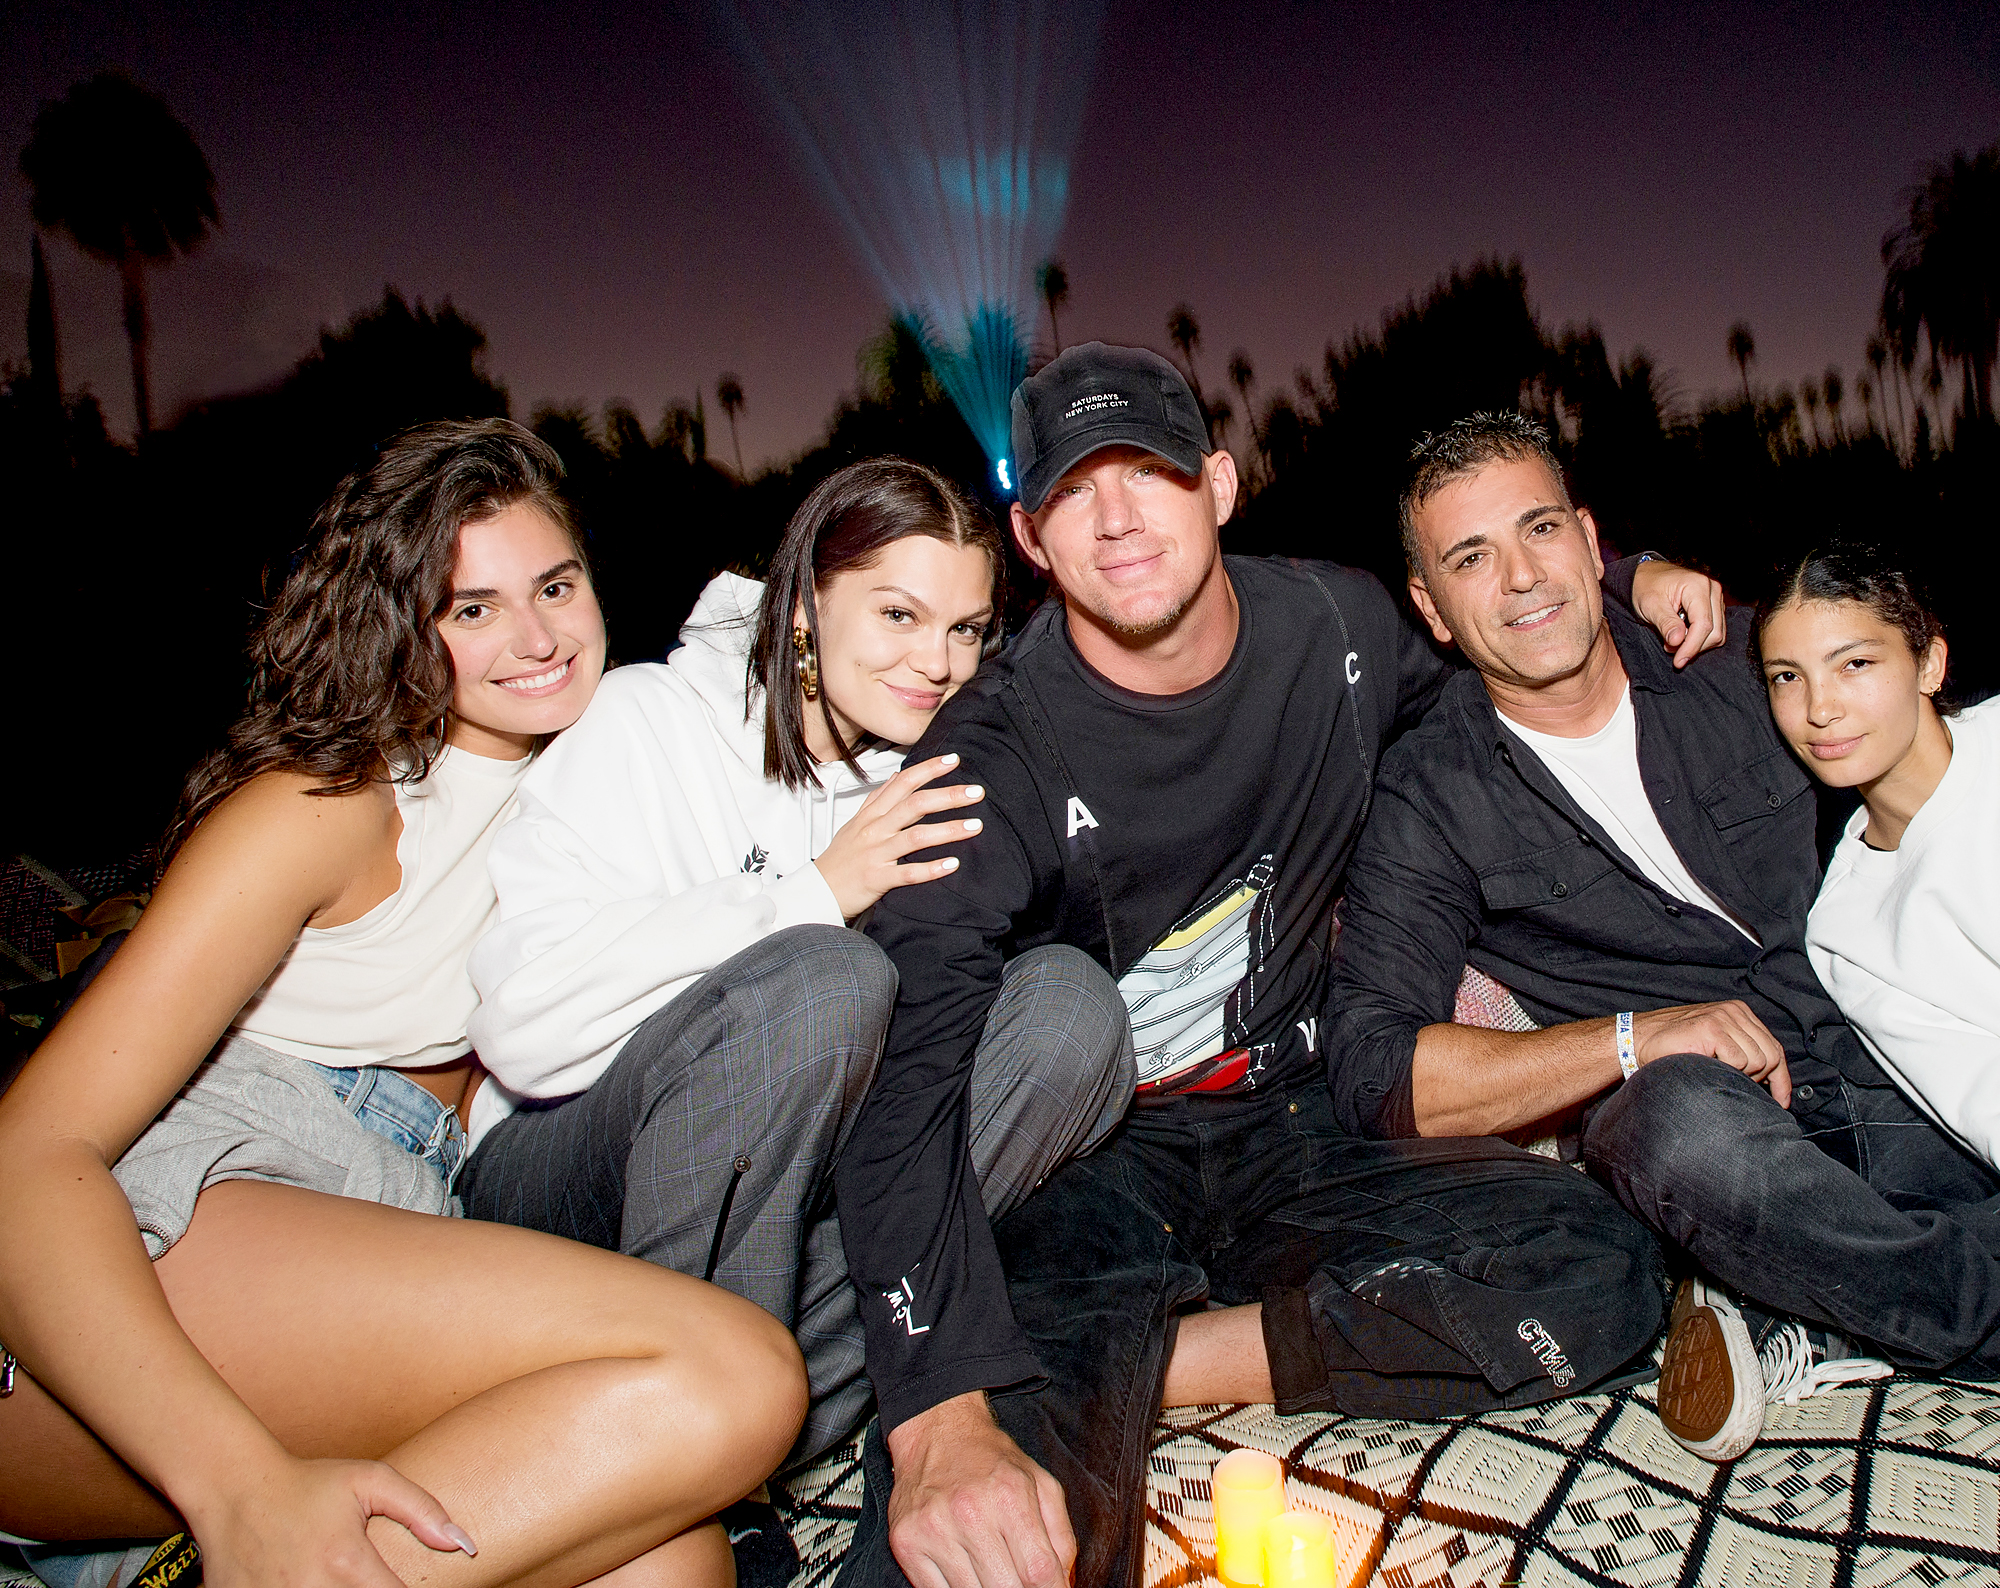 Channing-Tatum-and-Jessie-J-Get-Cozy-at-Intimate-Outdoor-Movie-Date